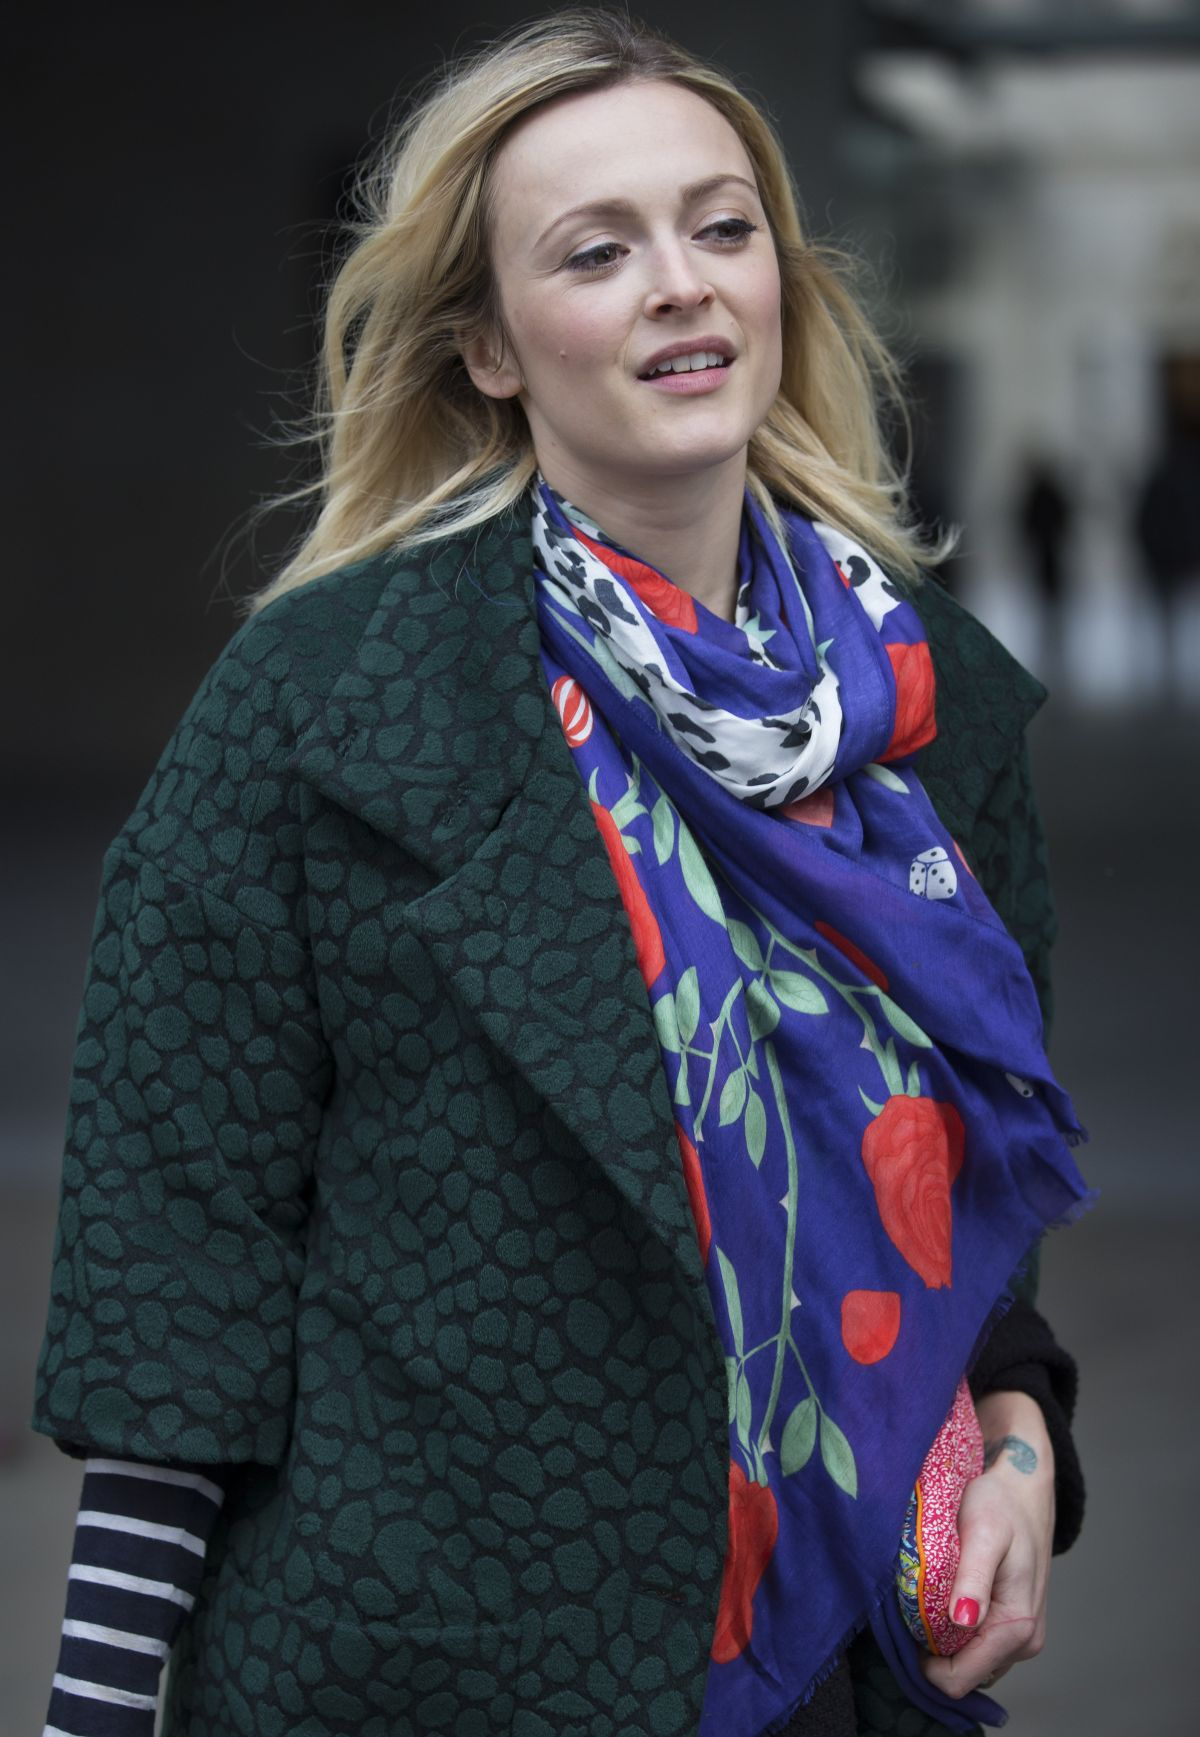 FEARNE COTTON Arrives at BBC Radio Studios in London 0511